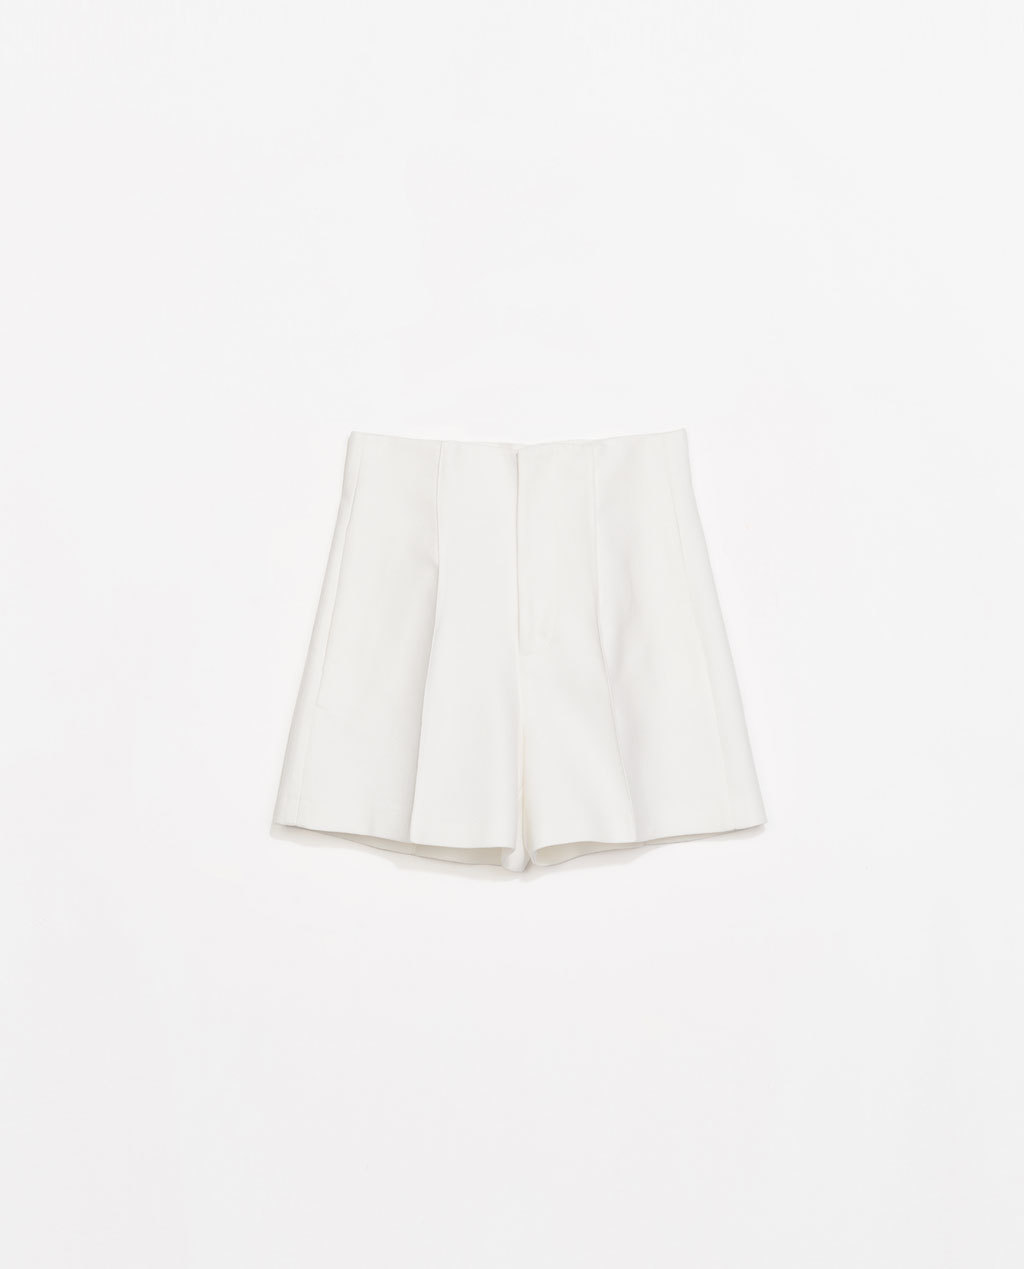 High Waist Structured Shorts - pattern: plain; waist: high rise; predominant colour: ivory/cream; occasions: casual, evening, creative work; fibres: cotton - mix; texture group: cotton feel fabrics; pattern type: fabric; season: s/s 2014; style: shorts; length: short shorts